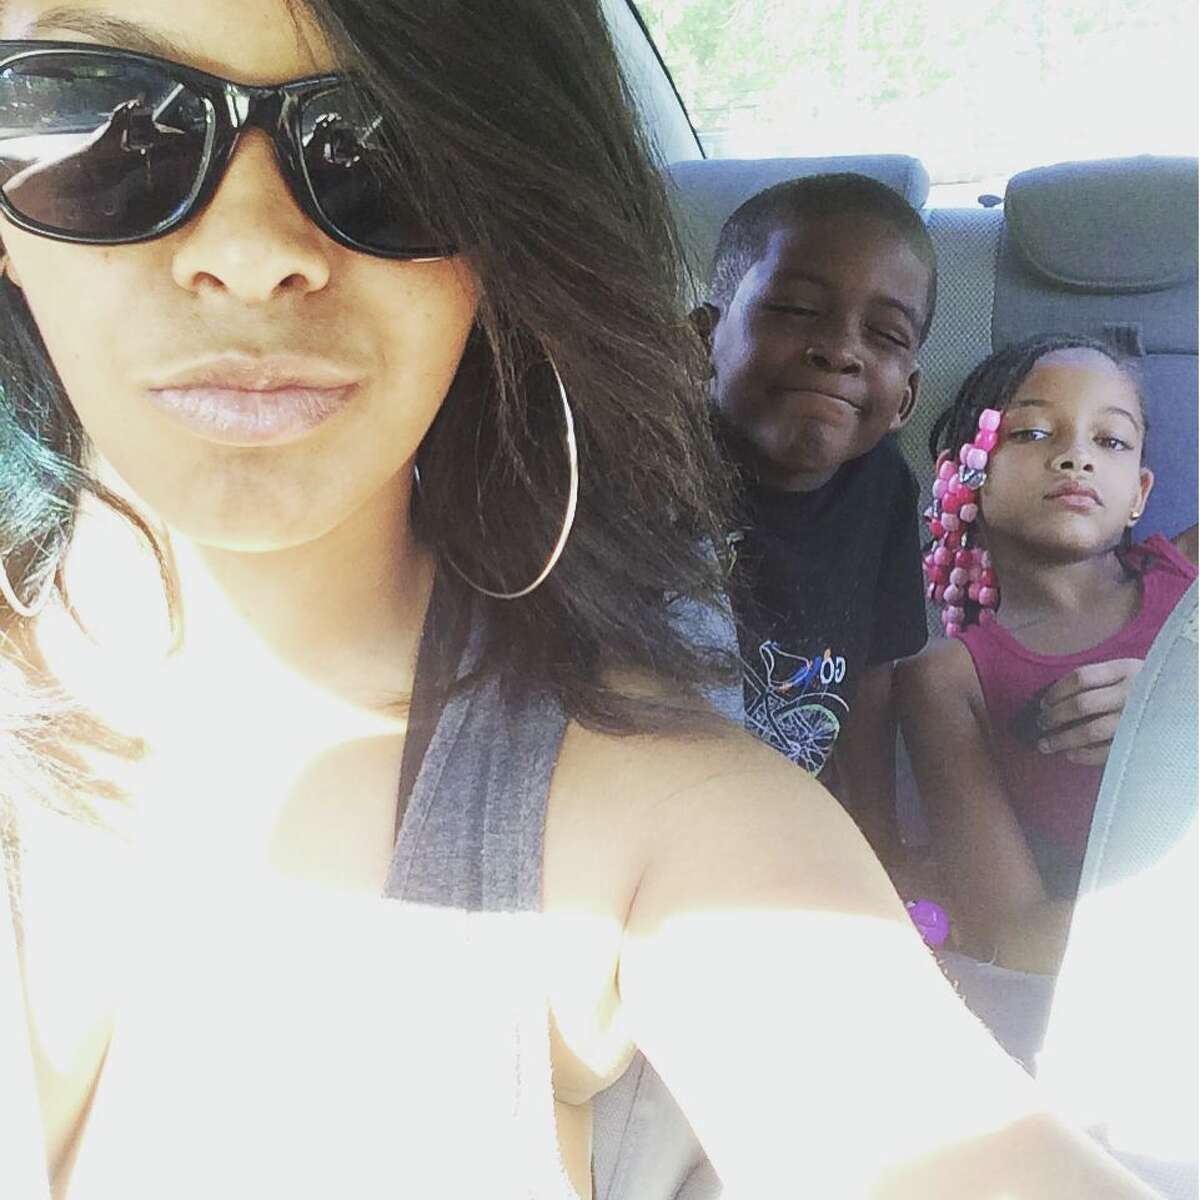 Dalila Yeend and her two children Taquan, 9, and Savannah, 11. Provided by Monique de Latour